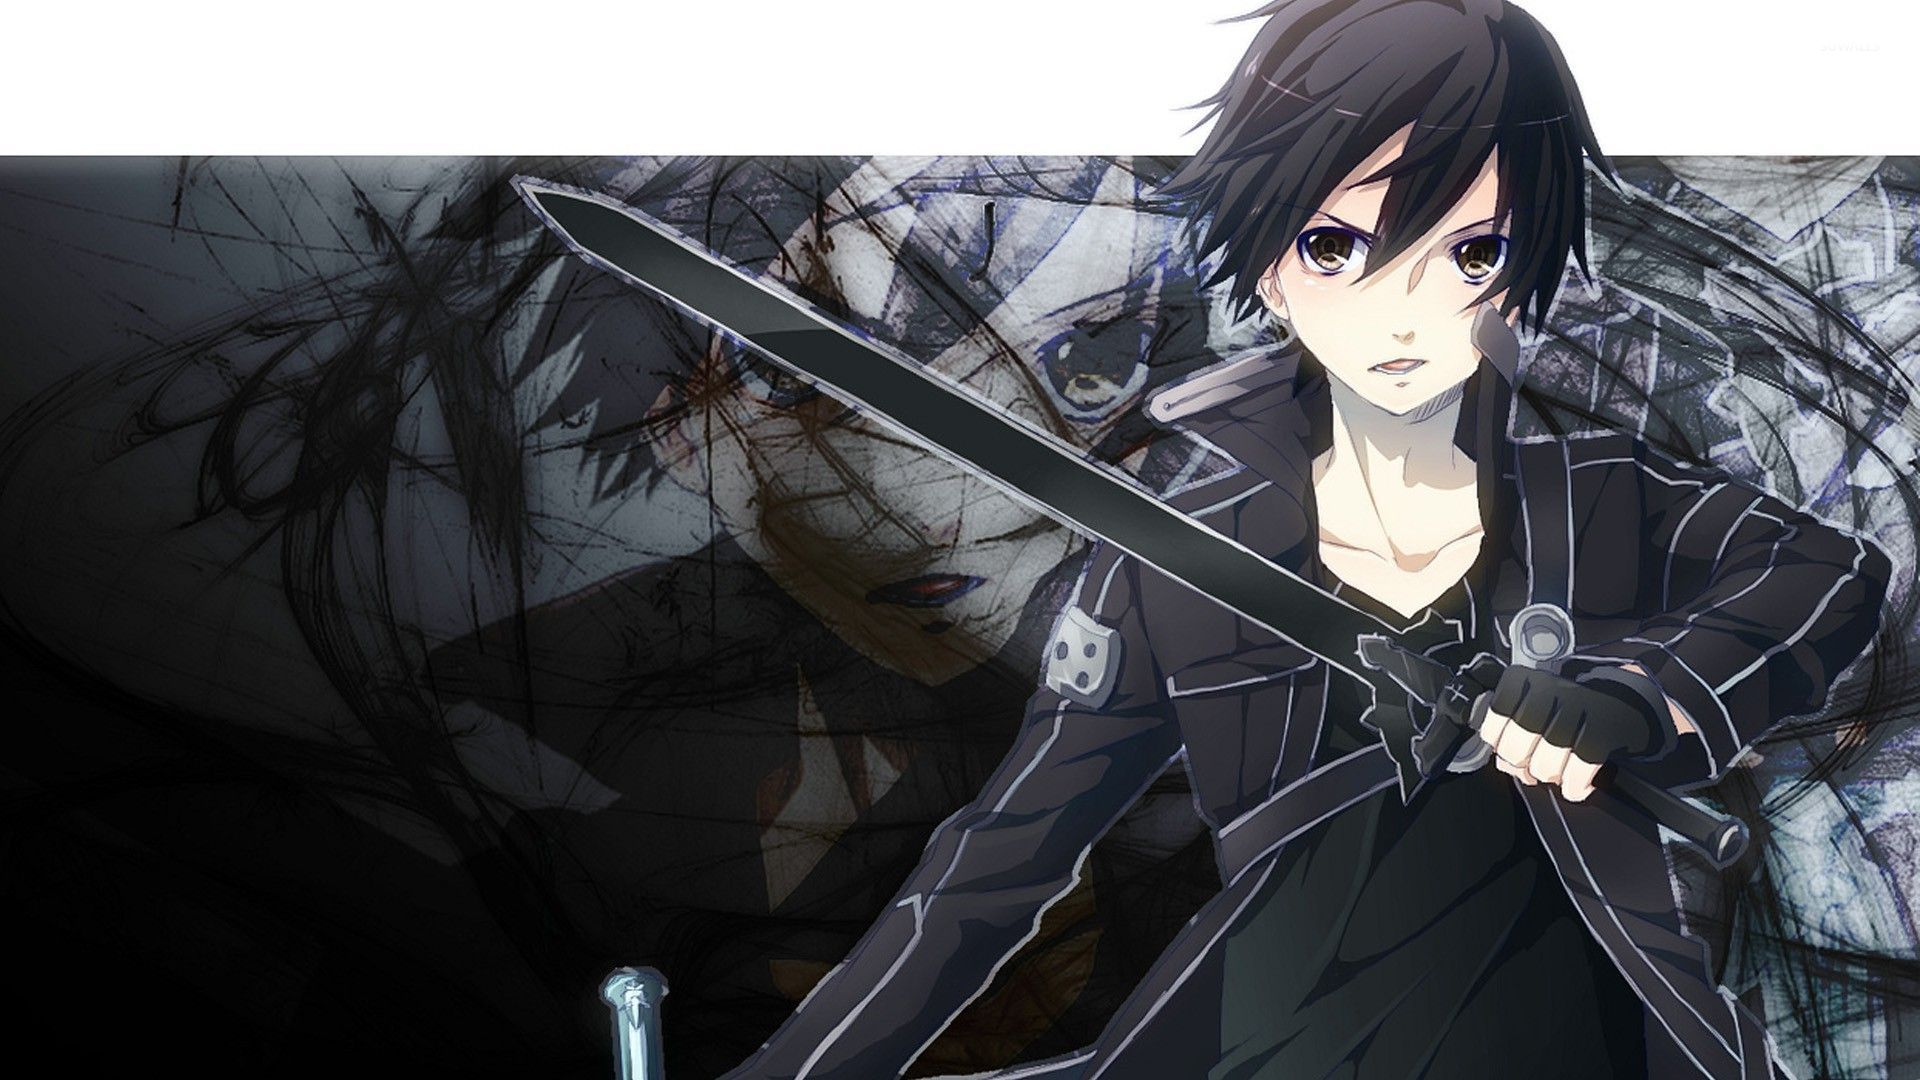 Kirito - Sword Art Online [4] wallpaper - Anime wallpapers ...